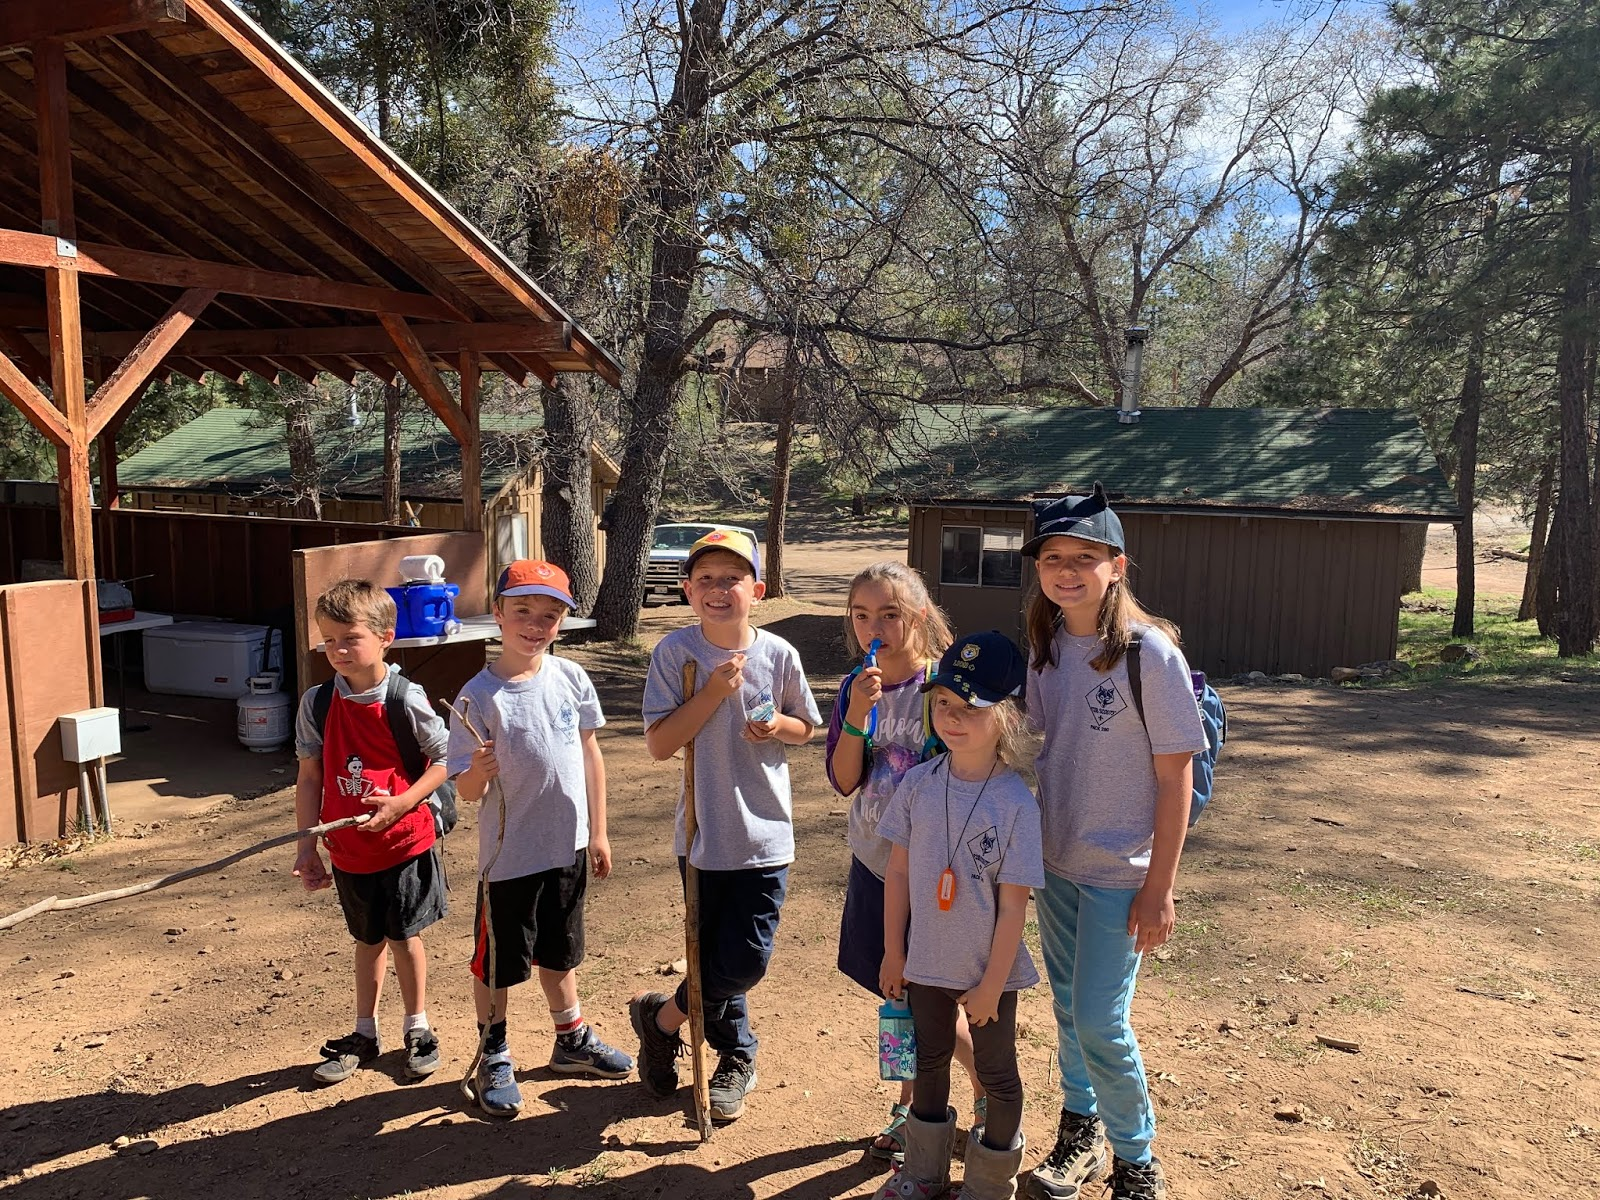 Team Kingman Part 2: Cub Scout Camping at Camp Tahquitz